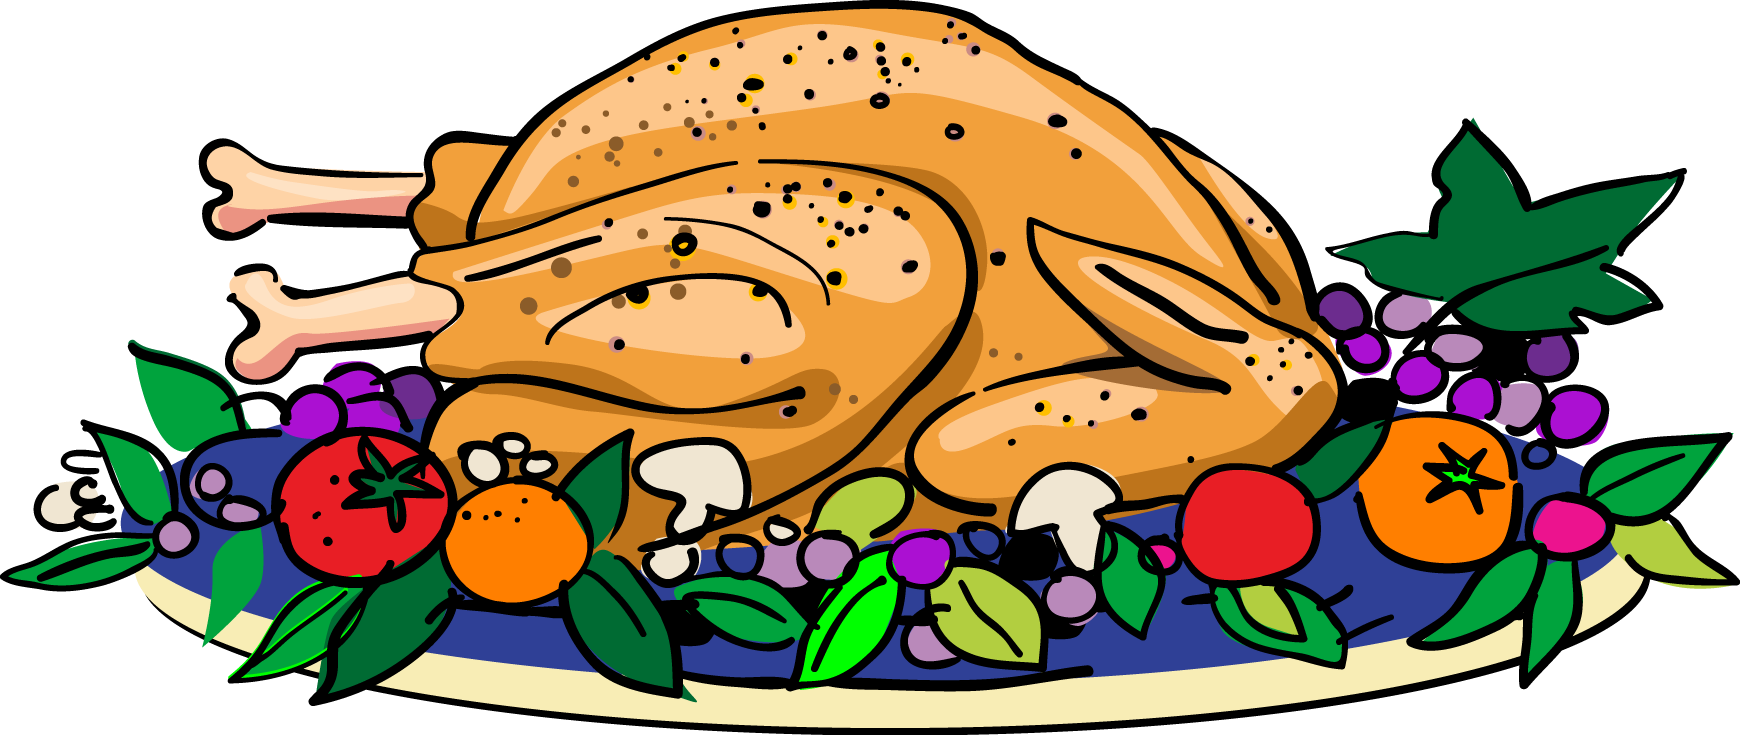 Turkey dinner clipart free images 4